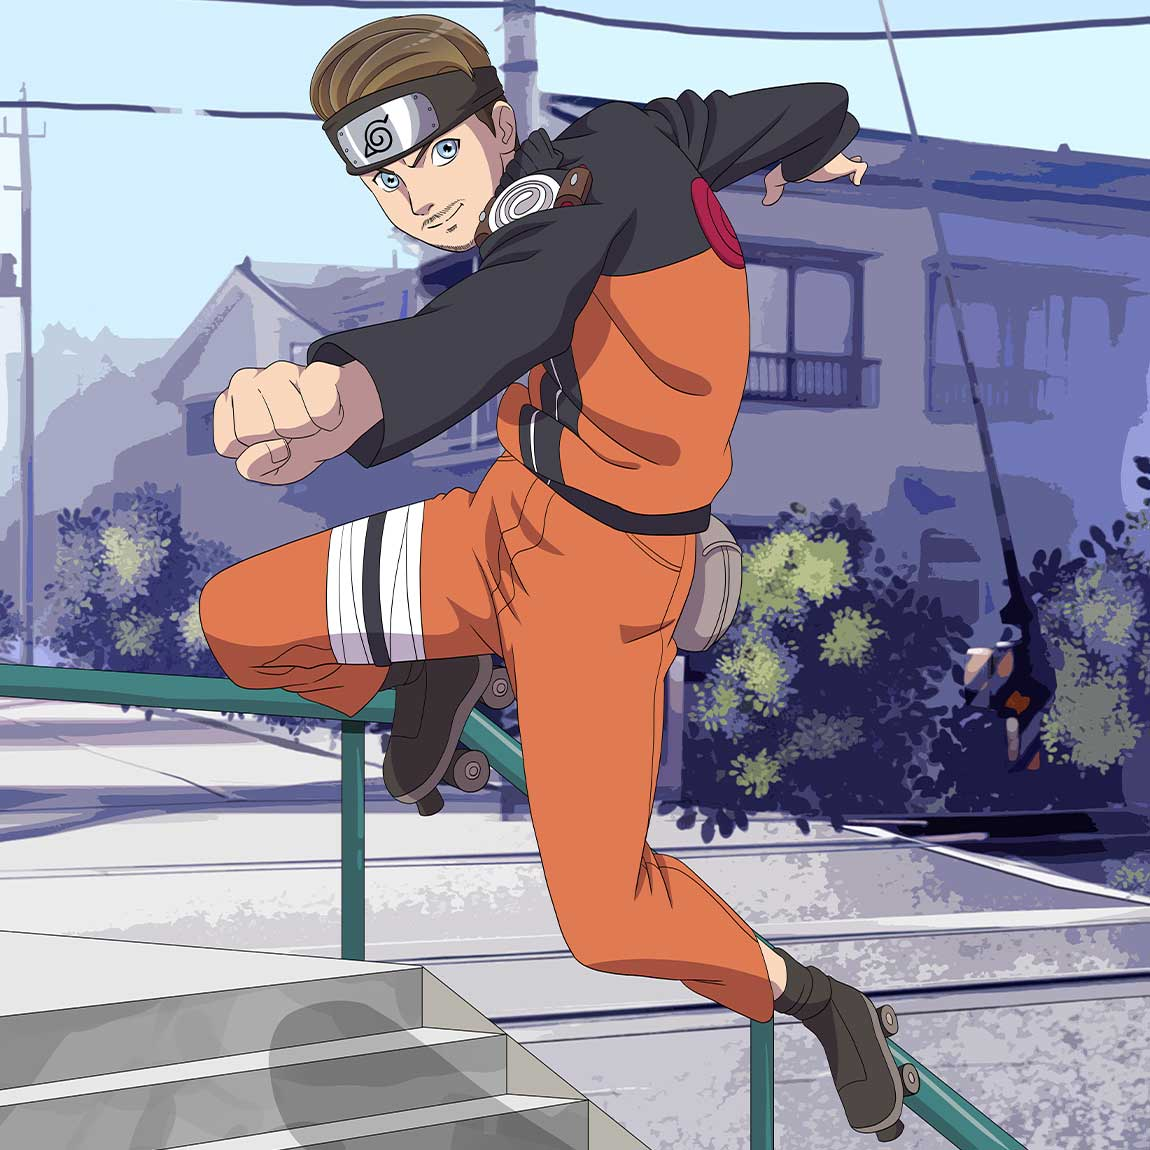 Young man turned into Naruto character. He is in his roller-blades going down the stairs handrail.